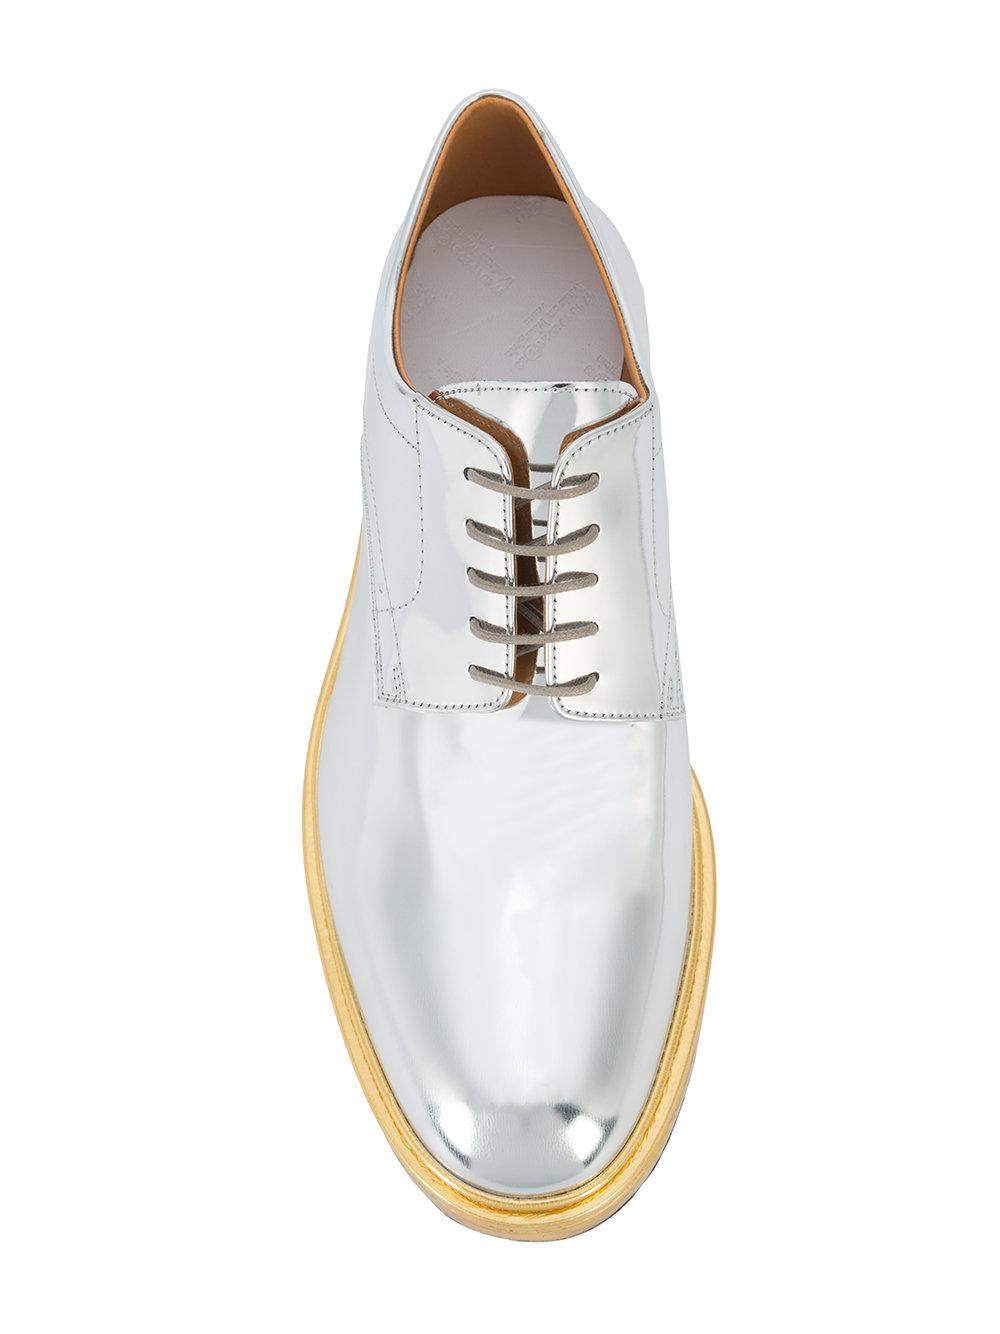 Free Shipping Cheapest mirror derby shoes - Metallic Maison Martin Margiela Pre Order Online yRmQVMv